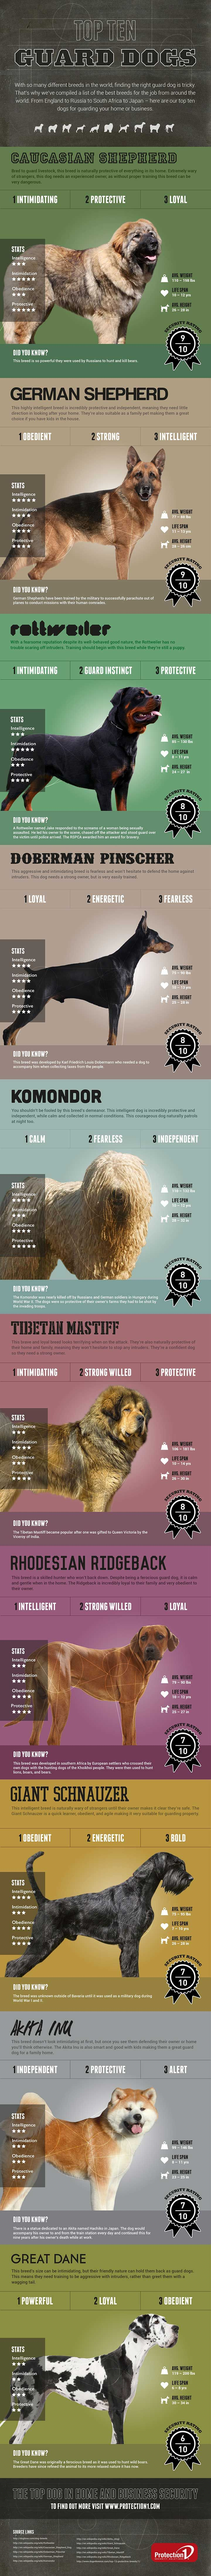 Infographic: The 'World's Top Ten' Guard Dogs - DesignTAXI.com